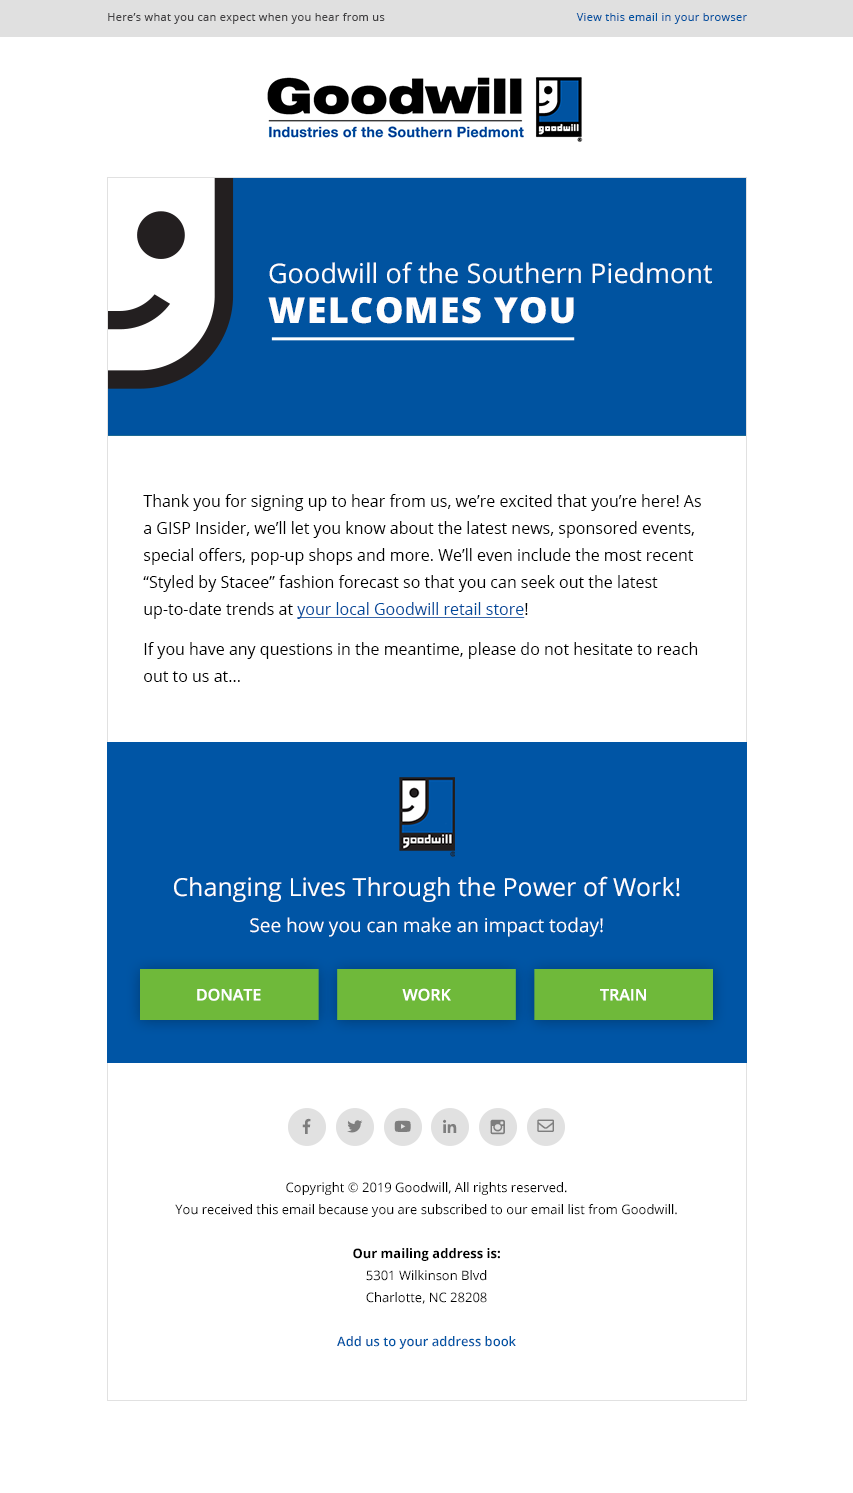 goodwill_email_welcome-1.2